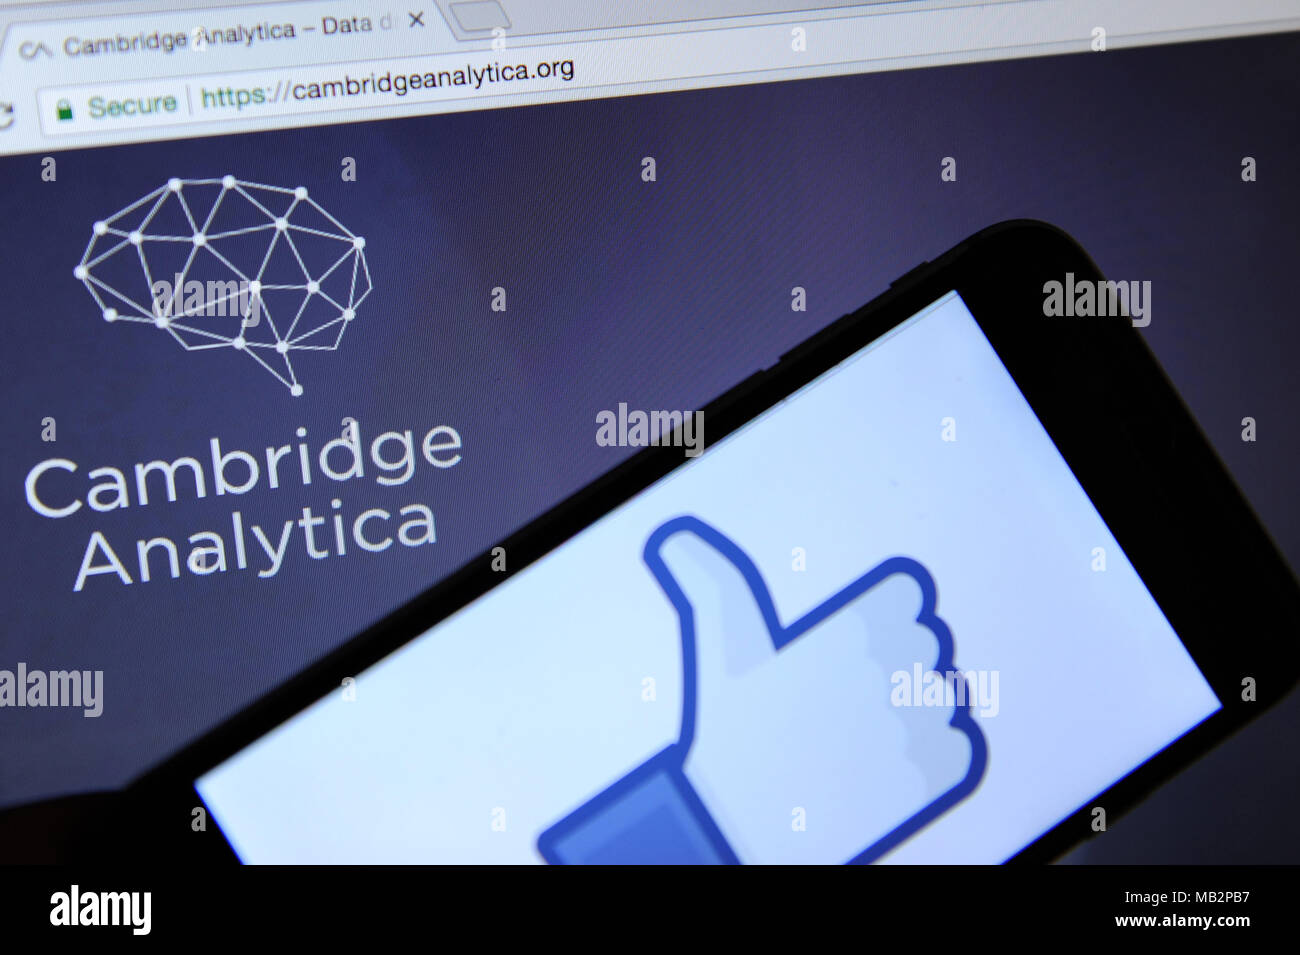 Cambride Analytica Website On A Computer Screen And The Facebook